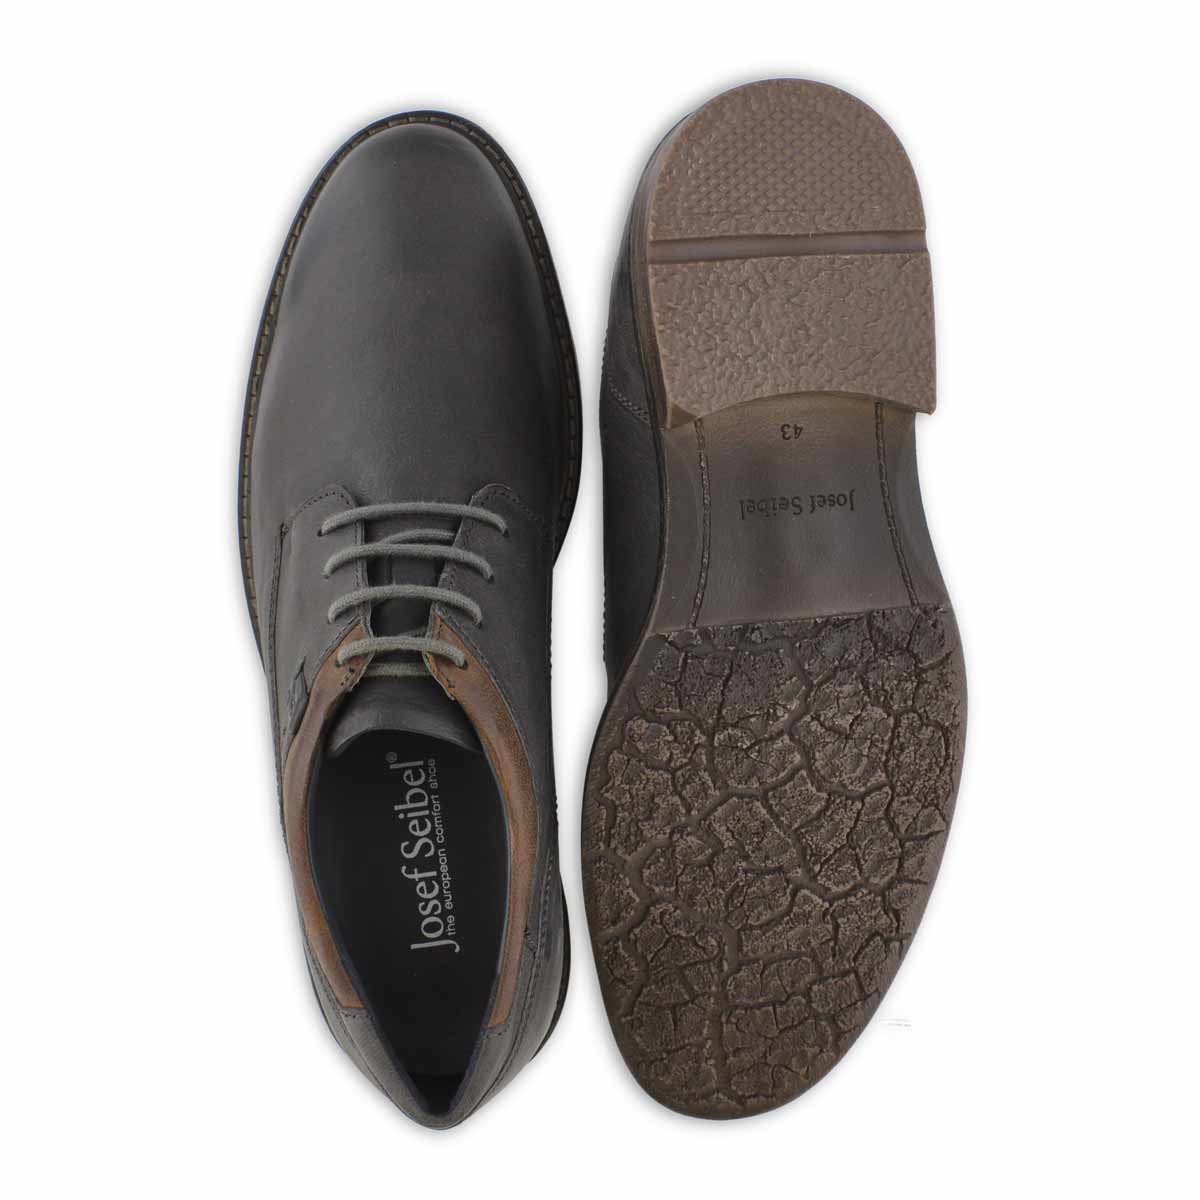 Men's EARL 05 graphit laceup casual oxfords